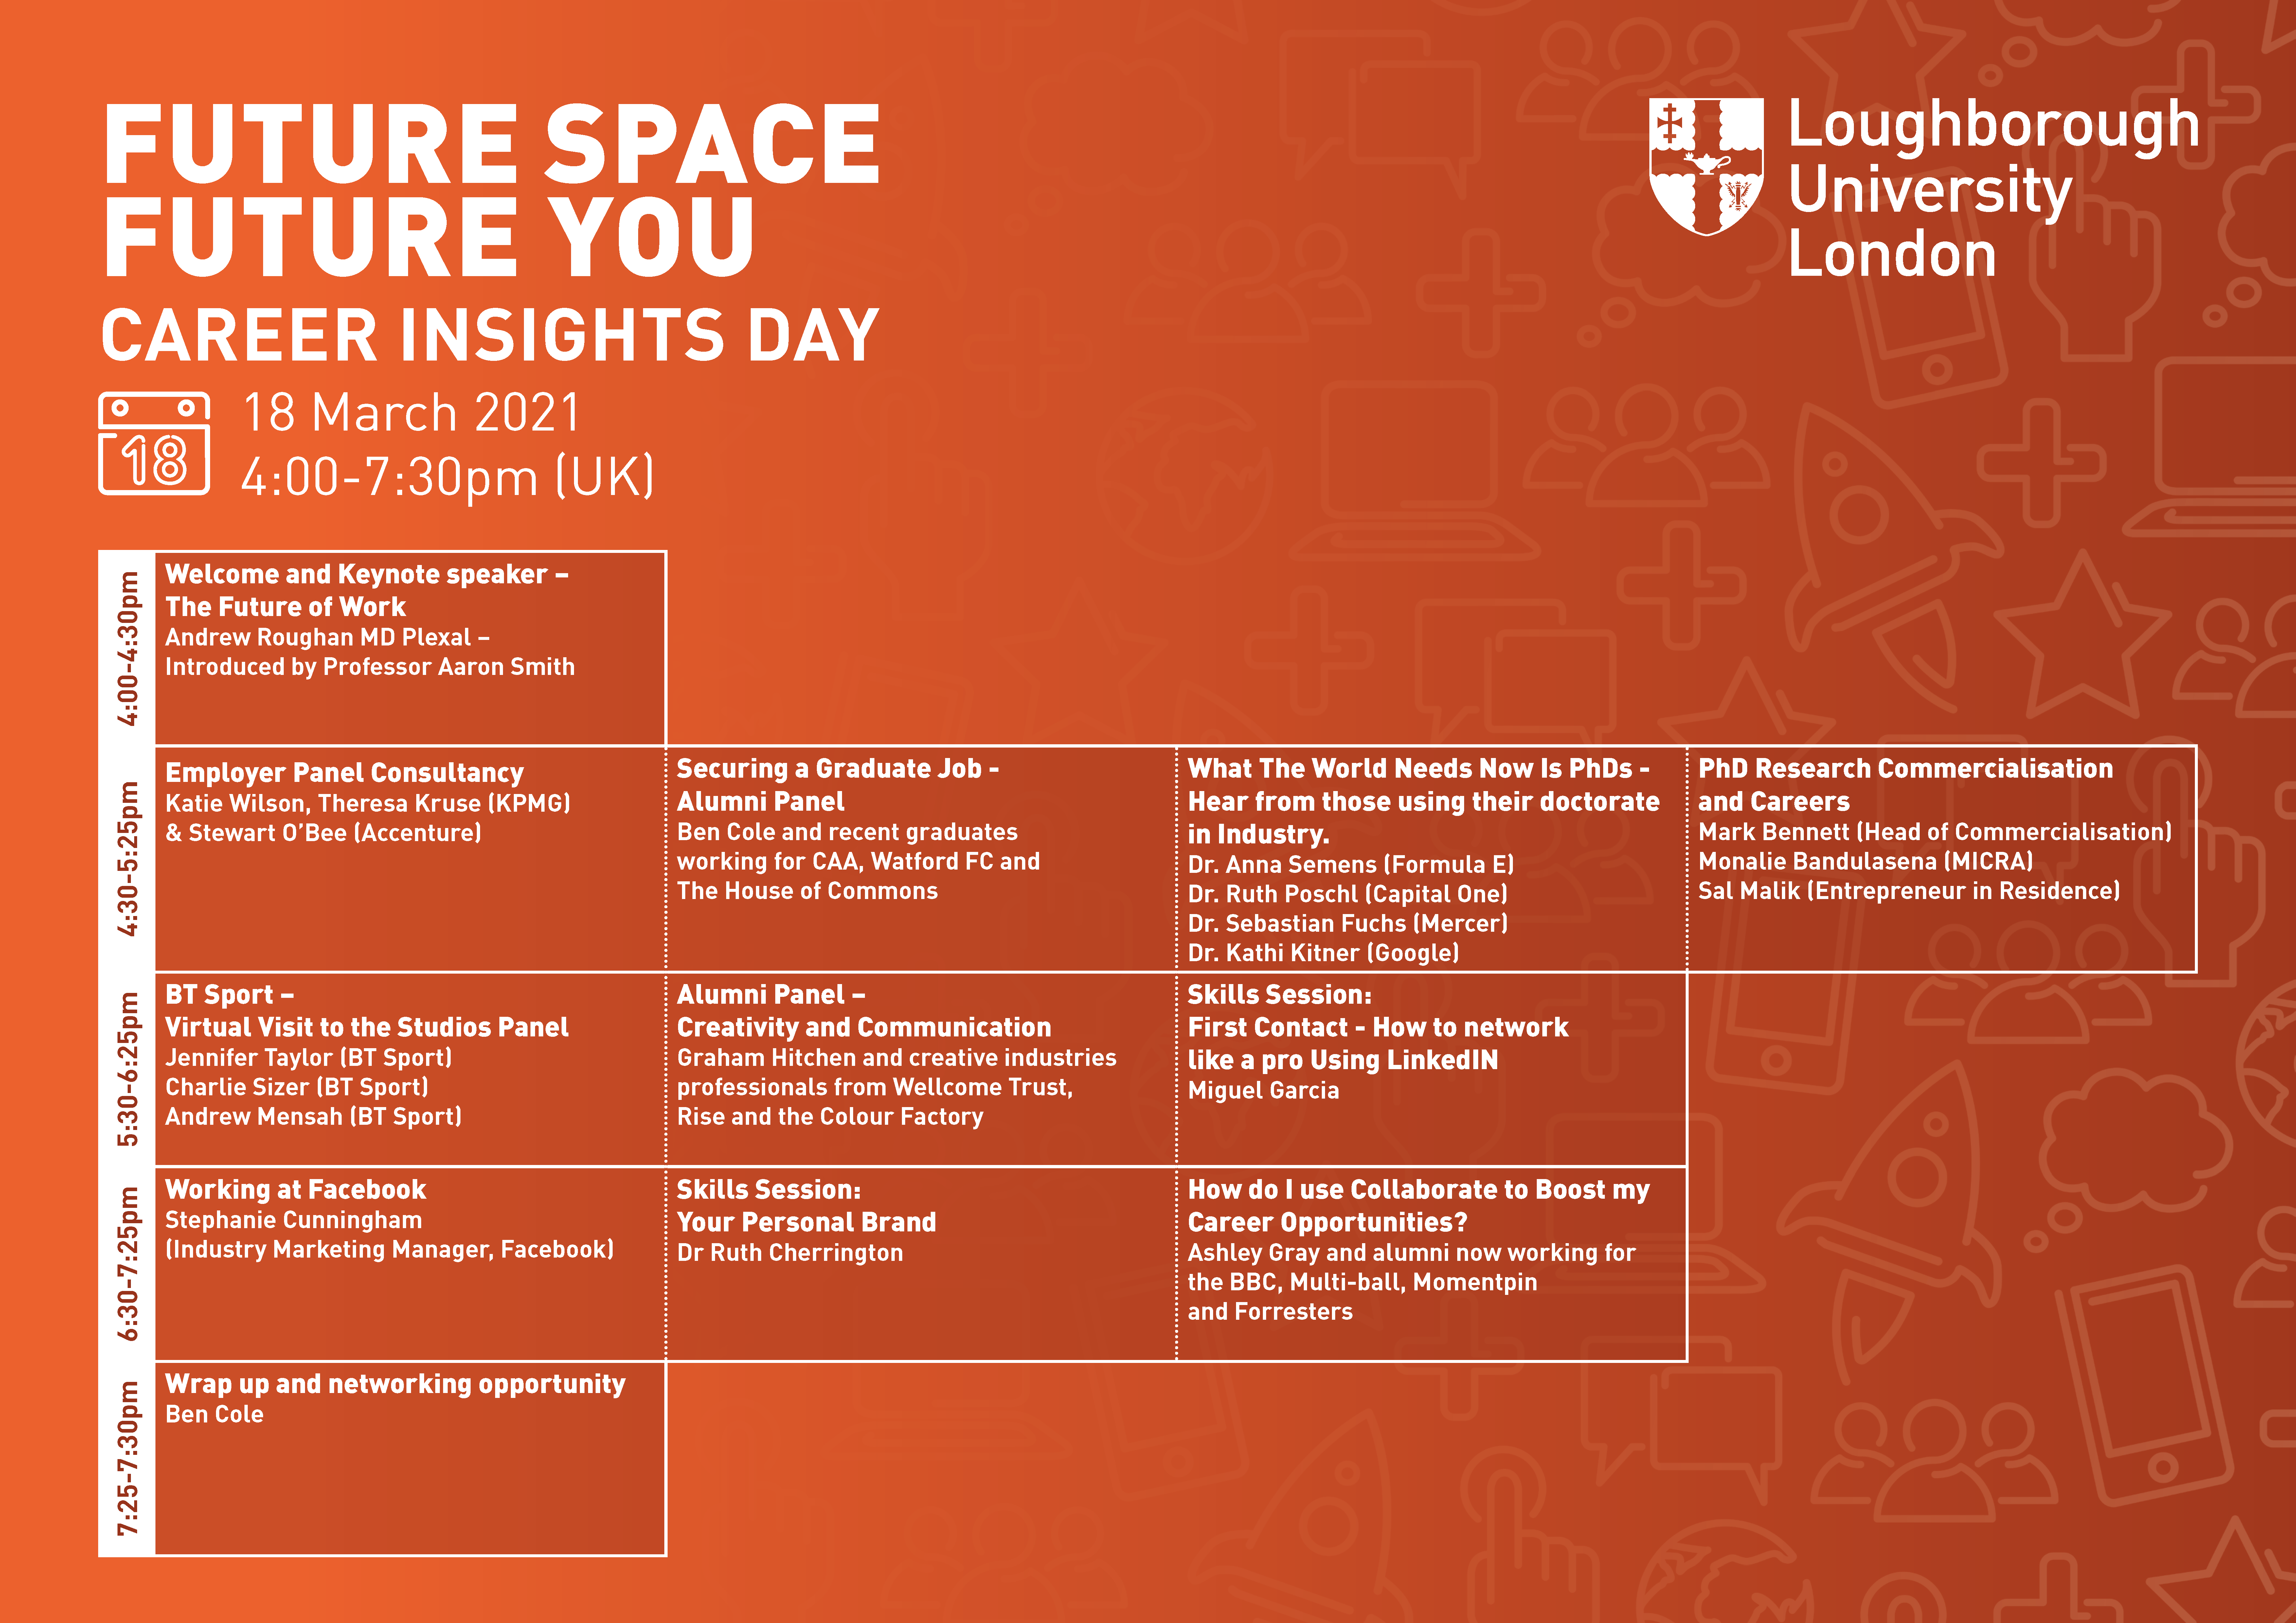 Image of Future Space | Future You event timetable.